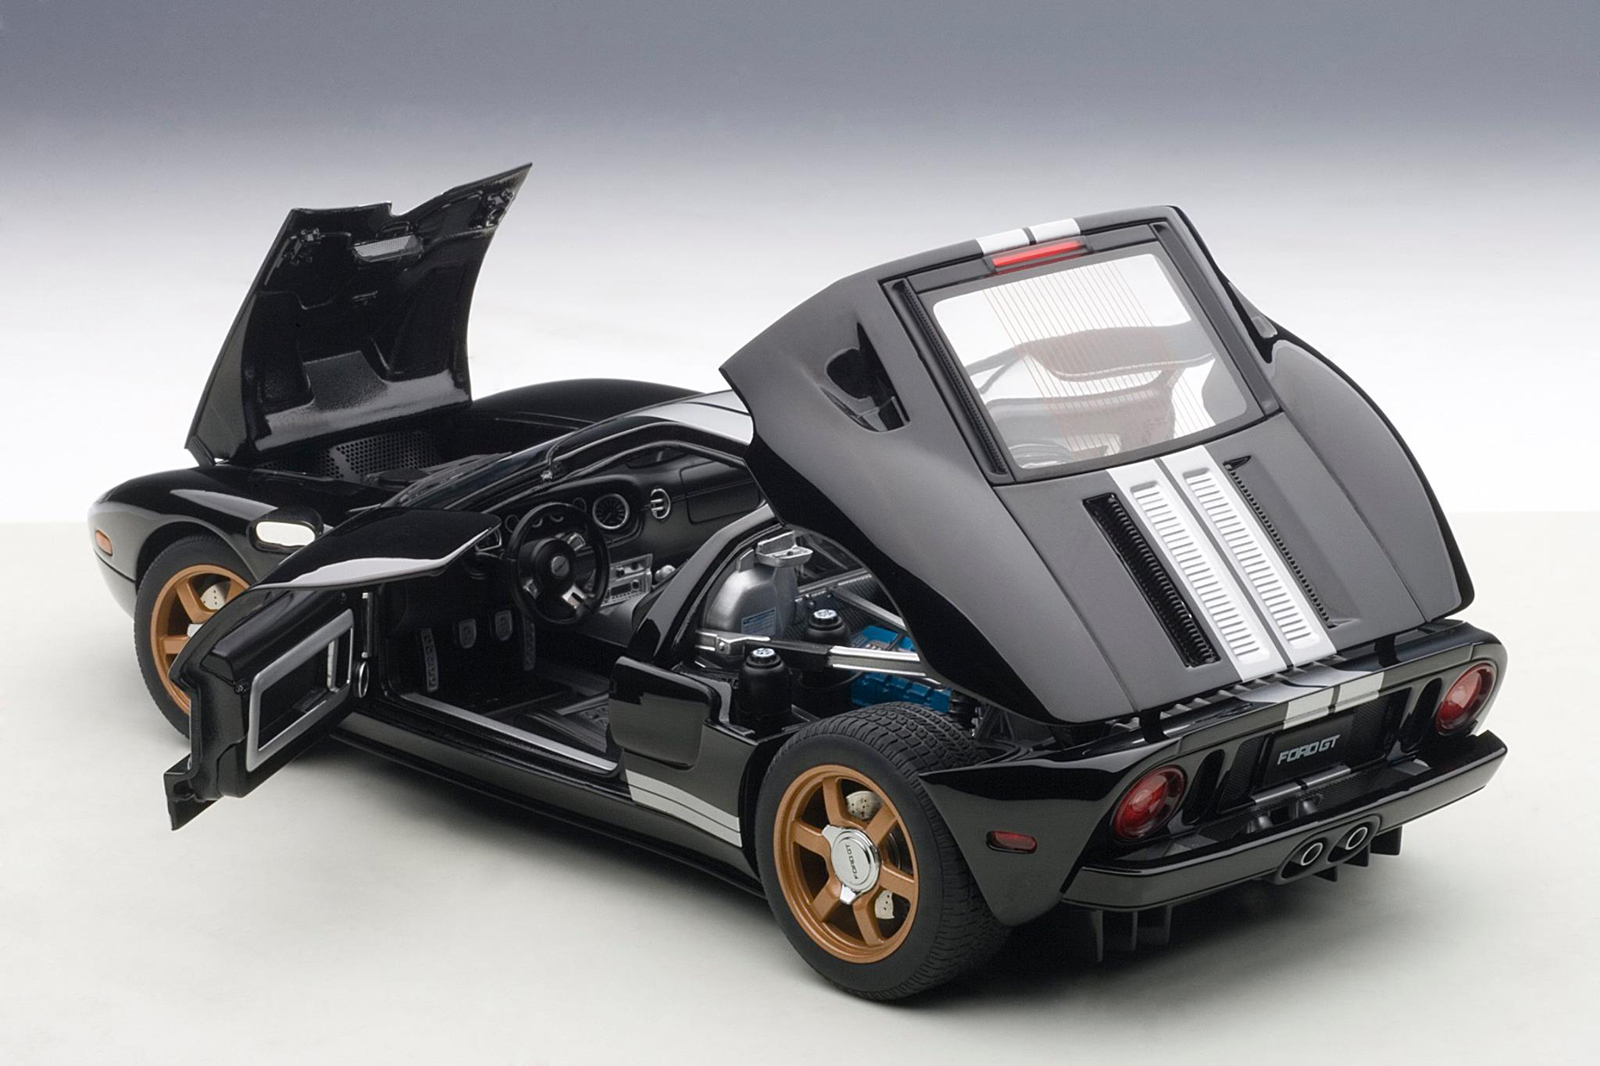 Autoart To Re Release Ford Gt 2004 In Red And Black Xdiecast